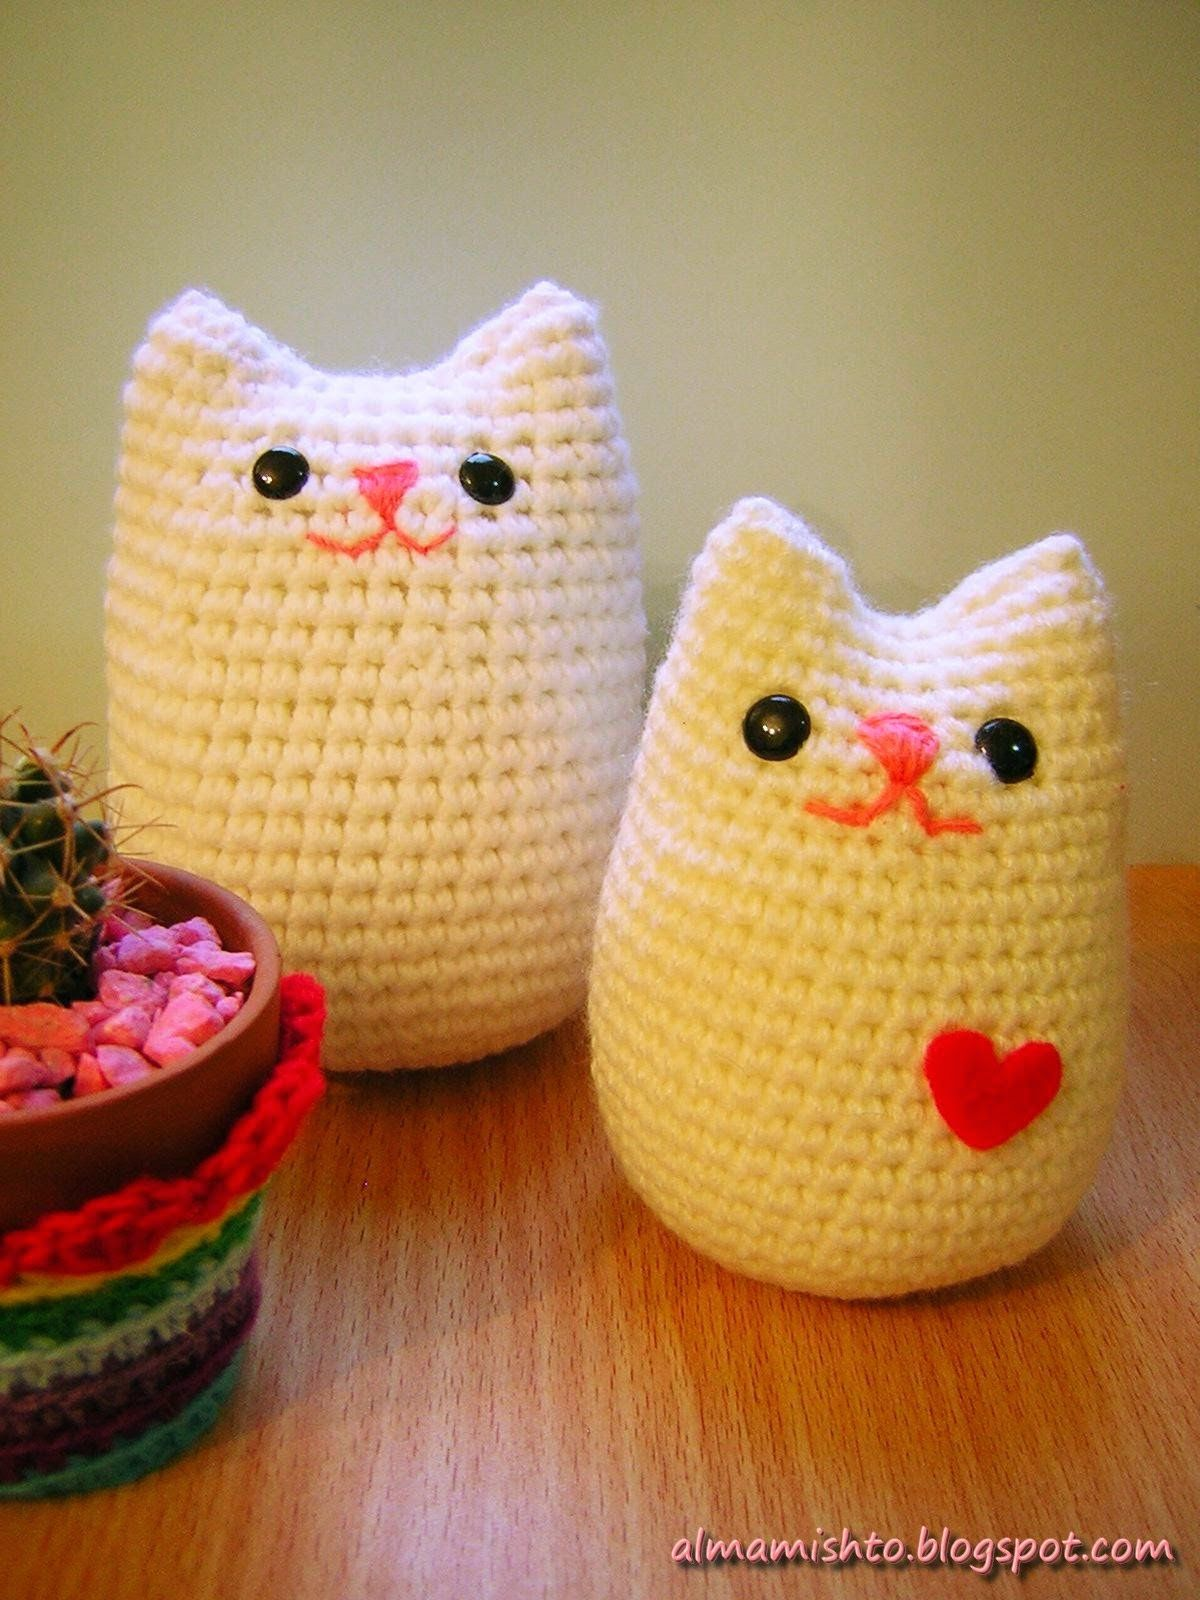 GATITO DORMIDO Amigurumi Tutorial Patron en Descripcion (traducido ... | 1600x1200